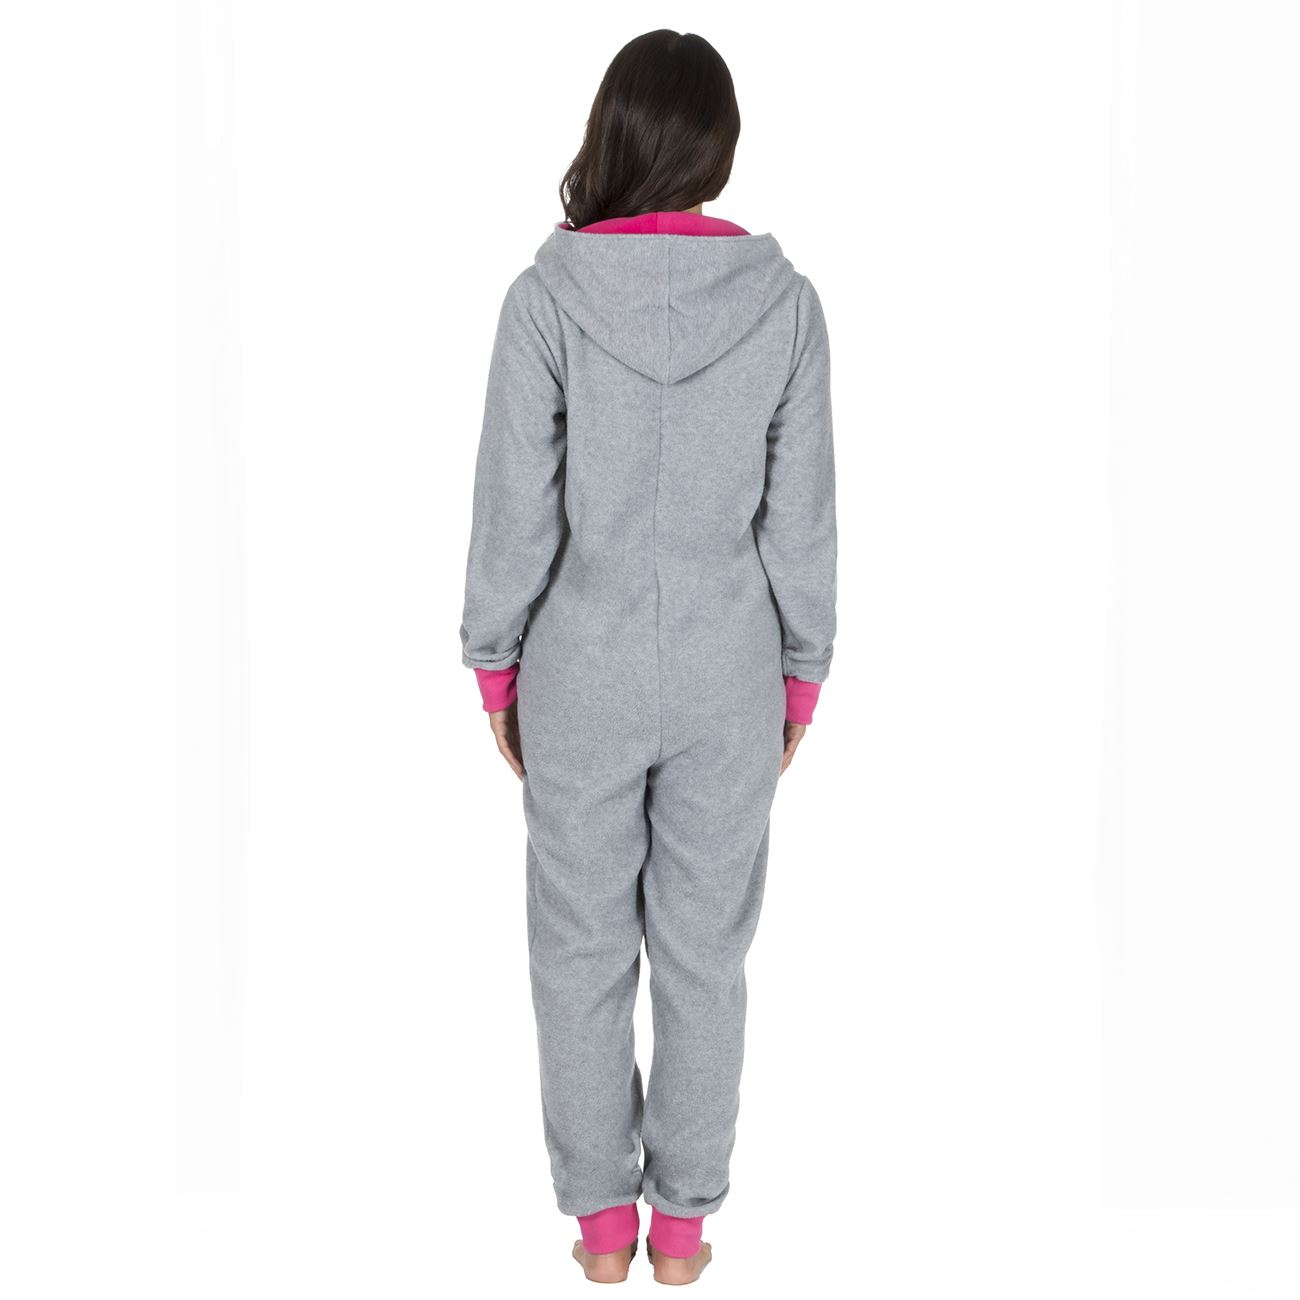 Ladies-Womens-Girls-Fleece-All-In-One-Pyjamas-Outfit-Jumpsuit-Costume-Size-6-18 thumbnail 43